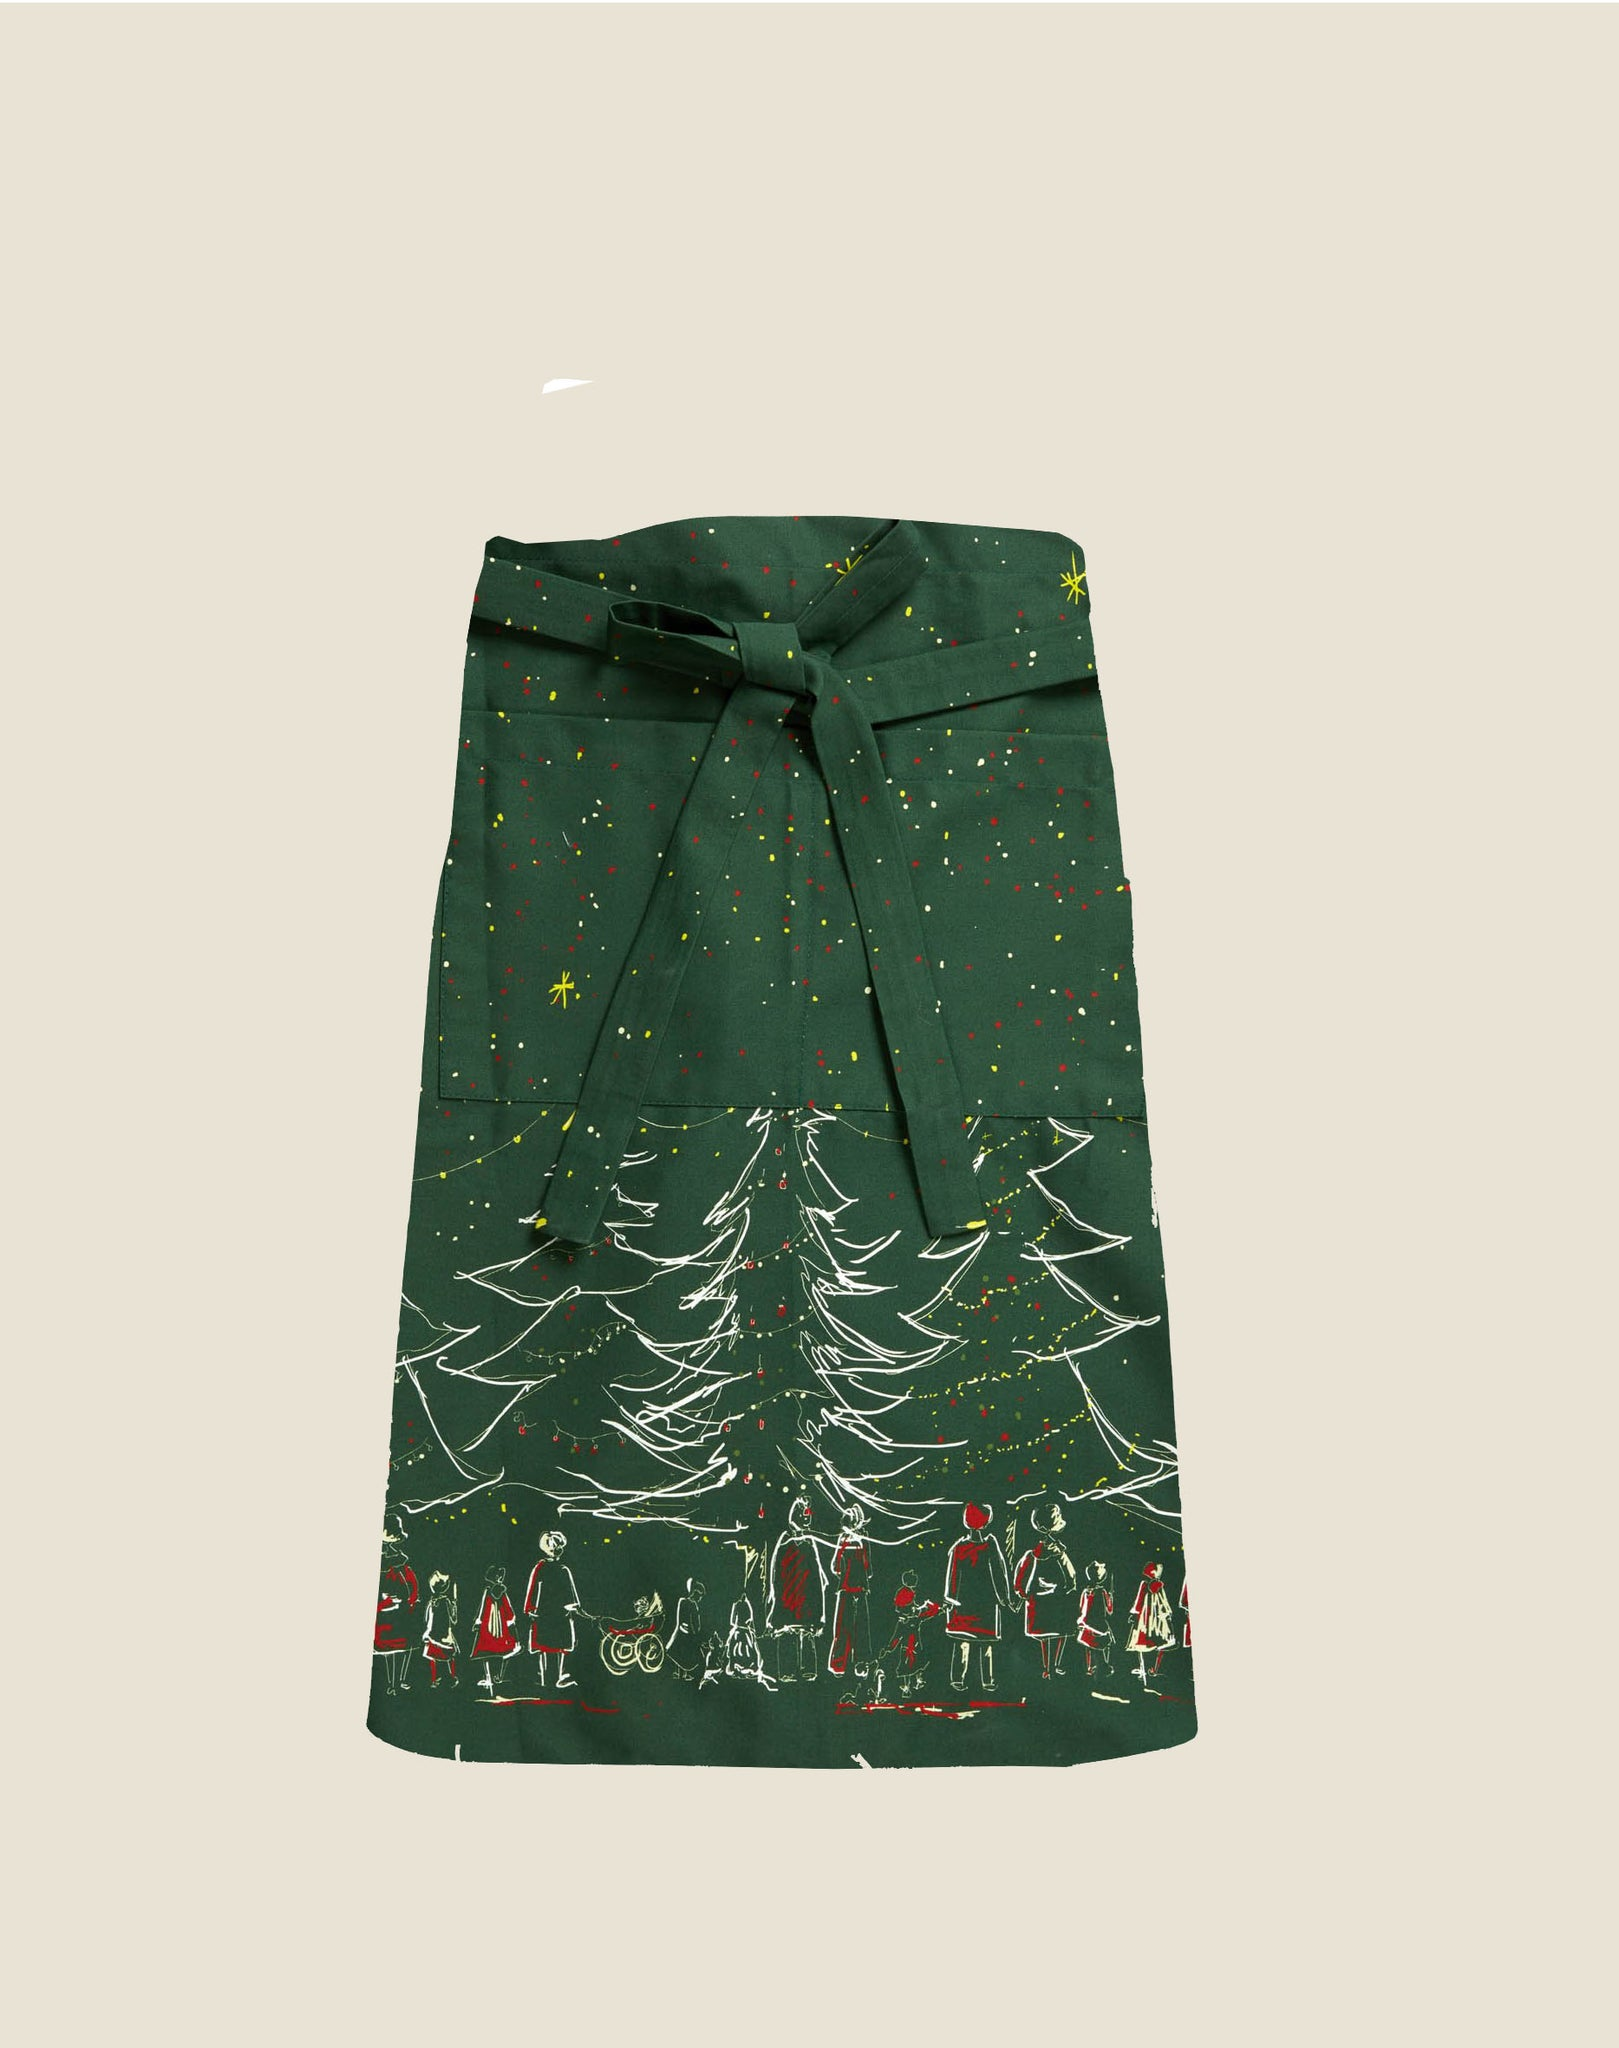 Apron - Green Christmas